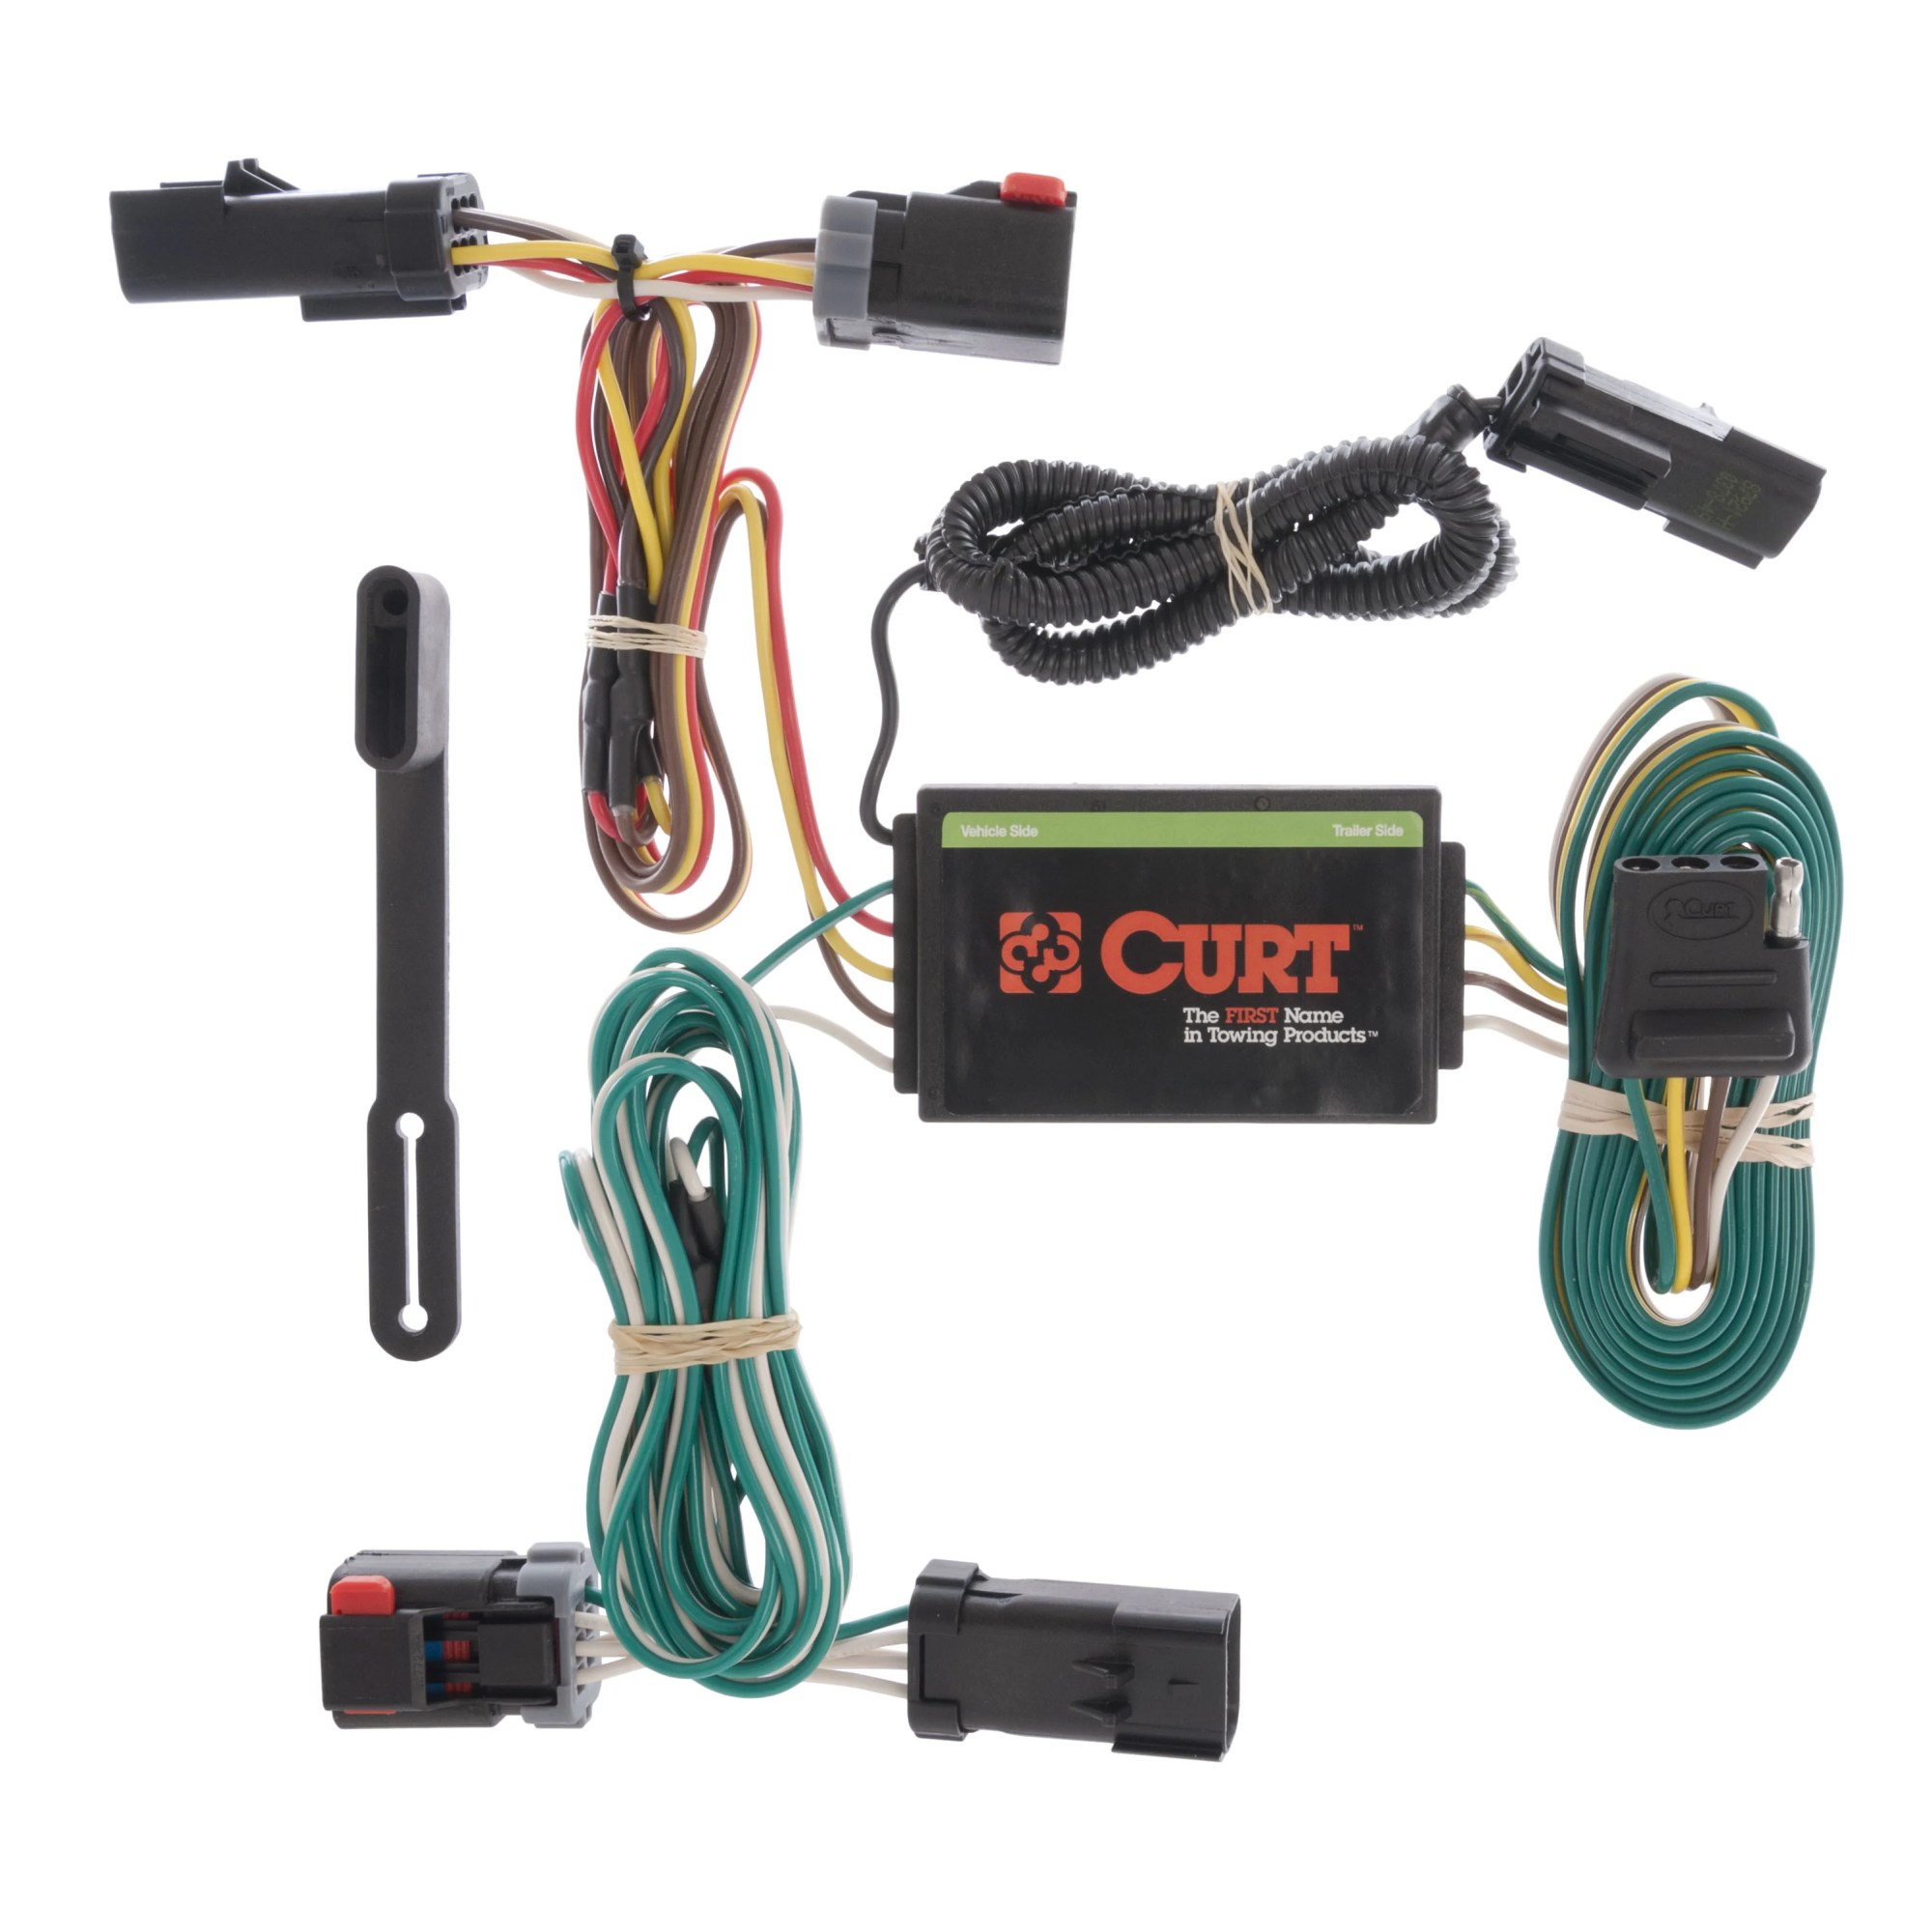 hight resolution of details about curt custom vehicle to trailer wiring harness 55530 for 04 08 chrysler pacifica